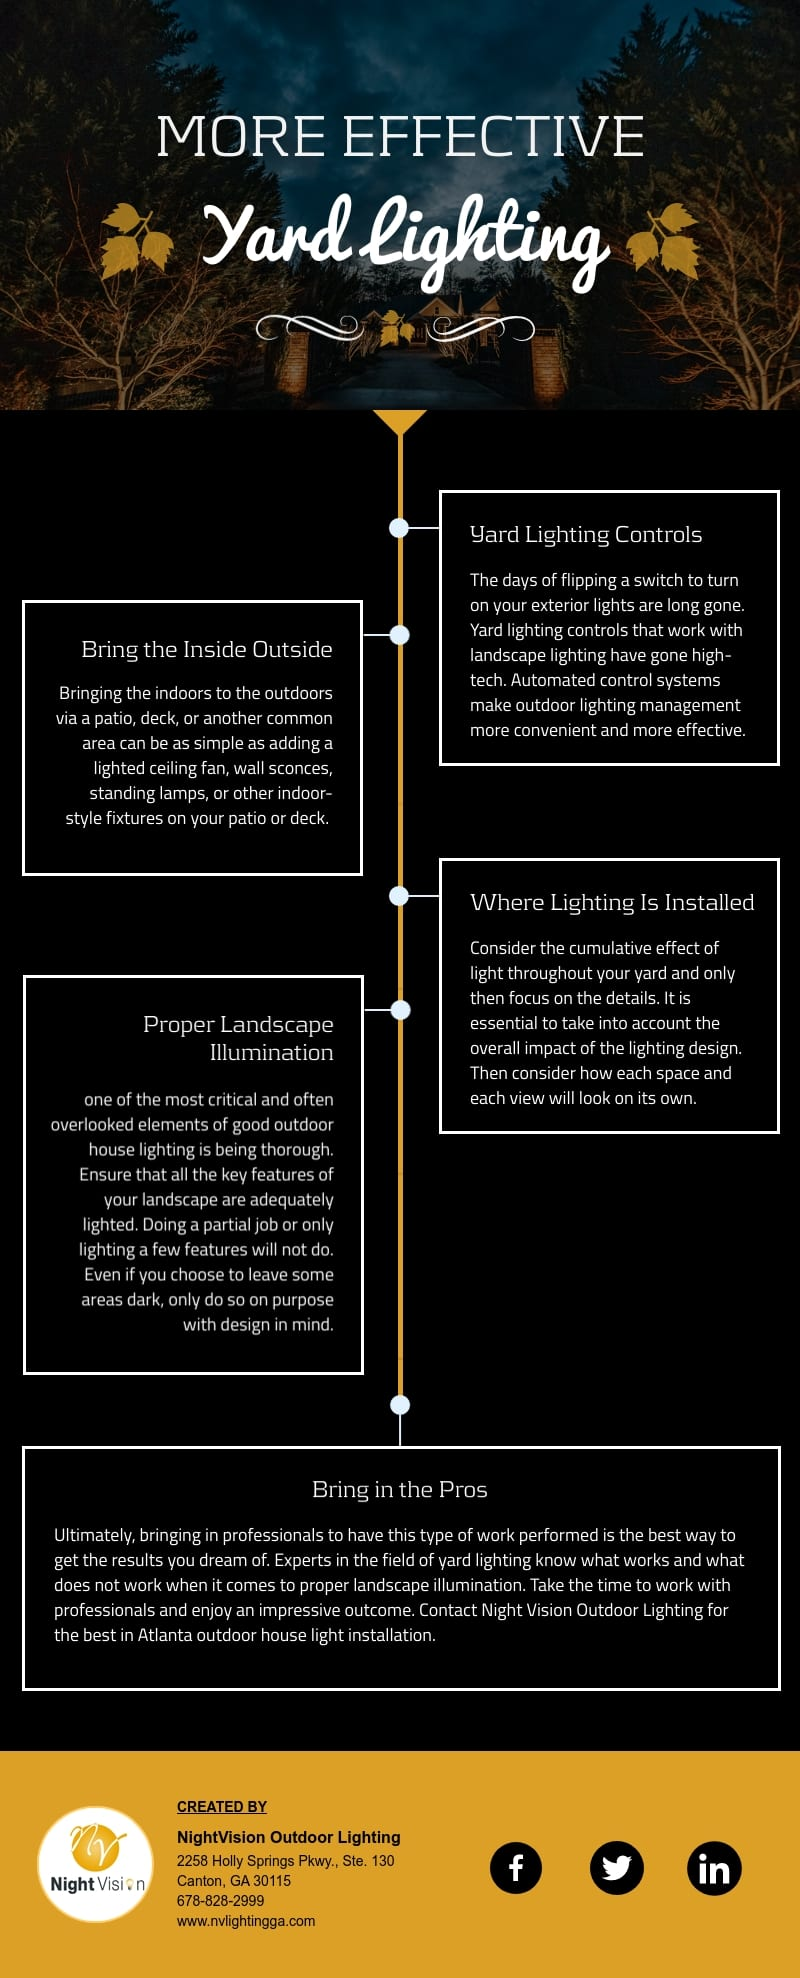 Tips On More Effective Yard Lighting [infographic]